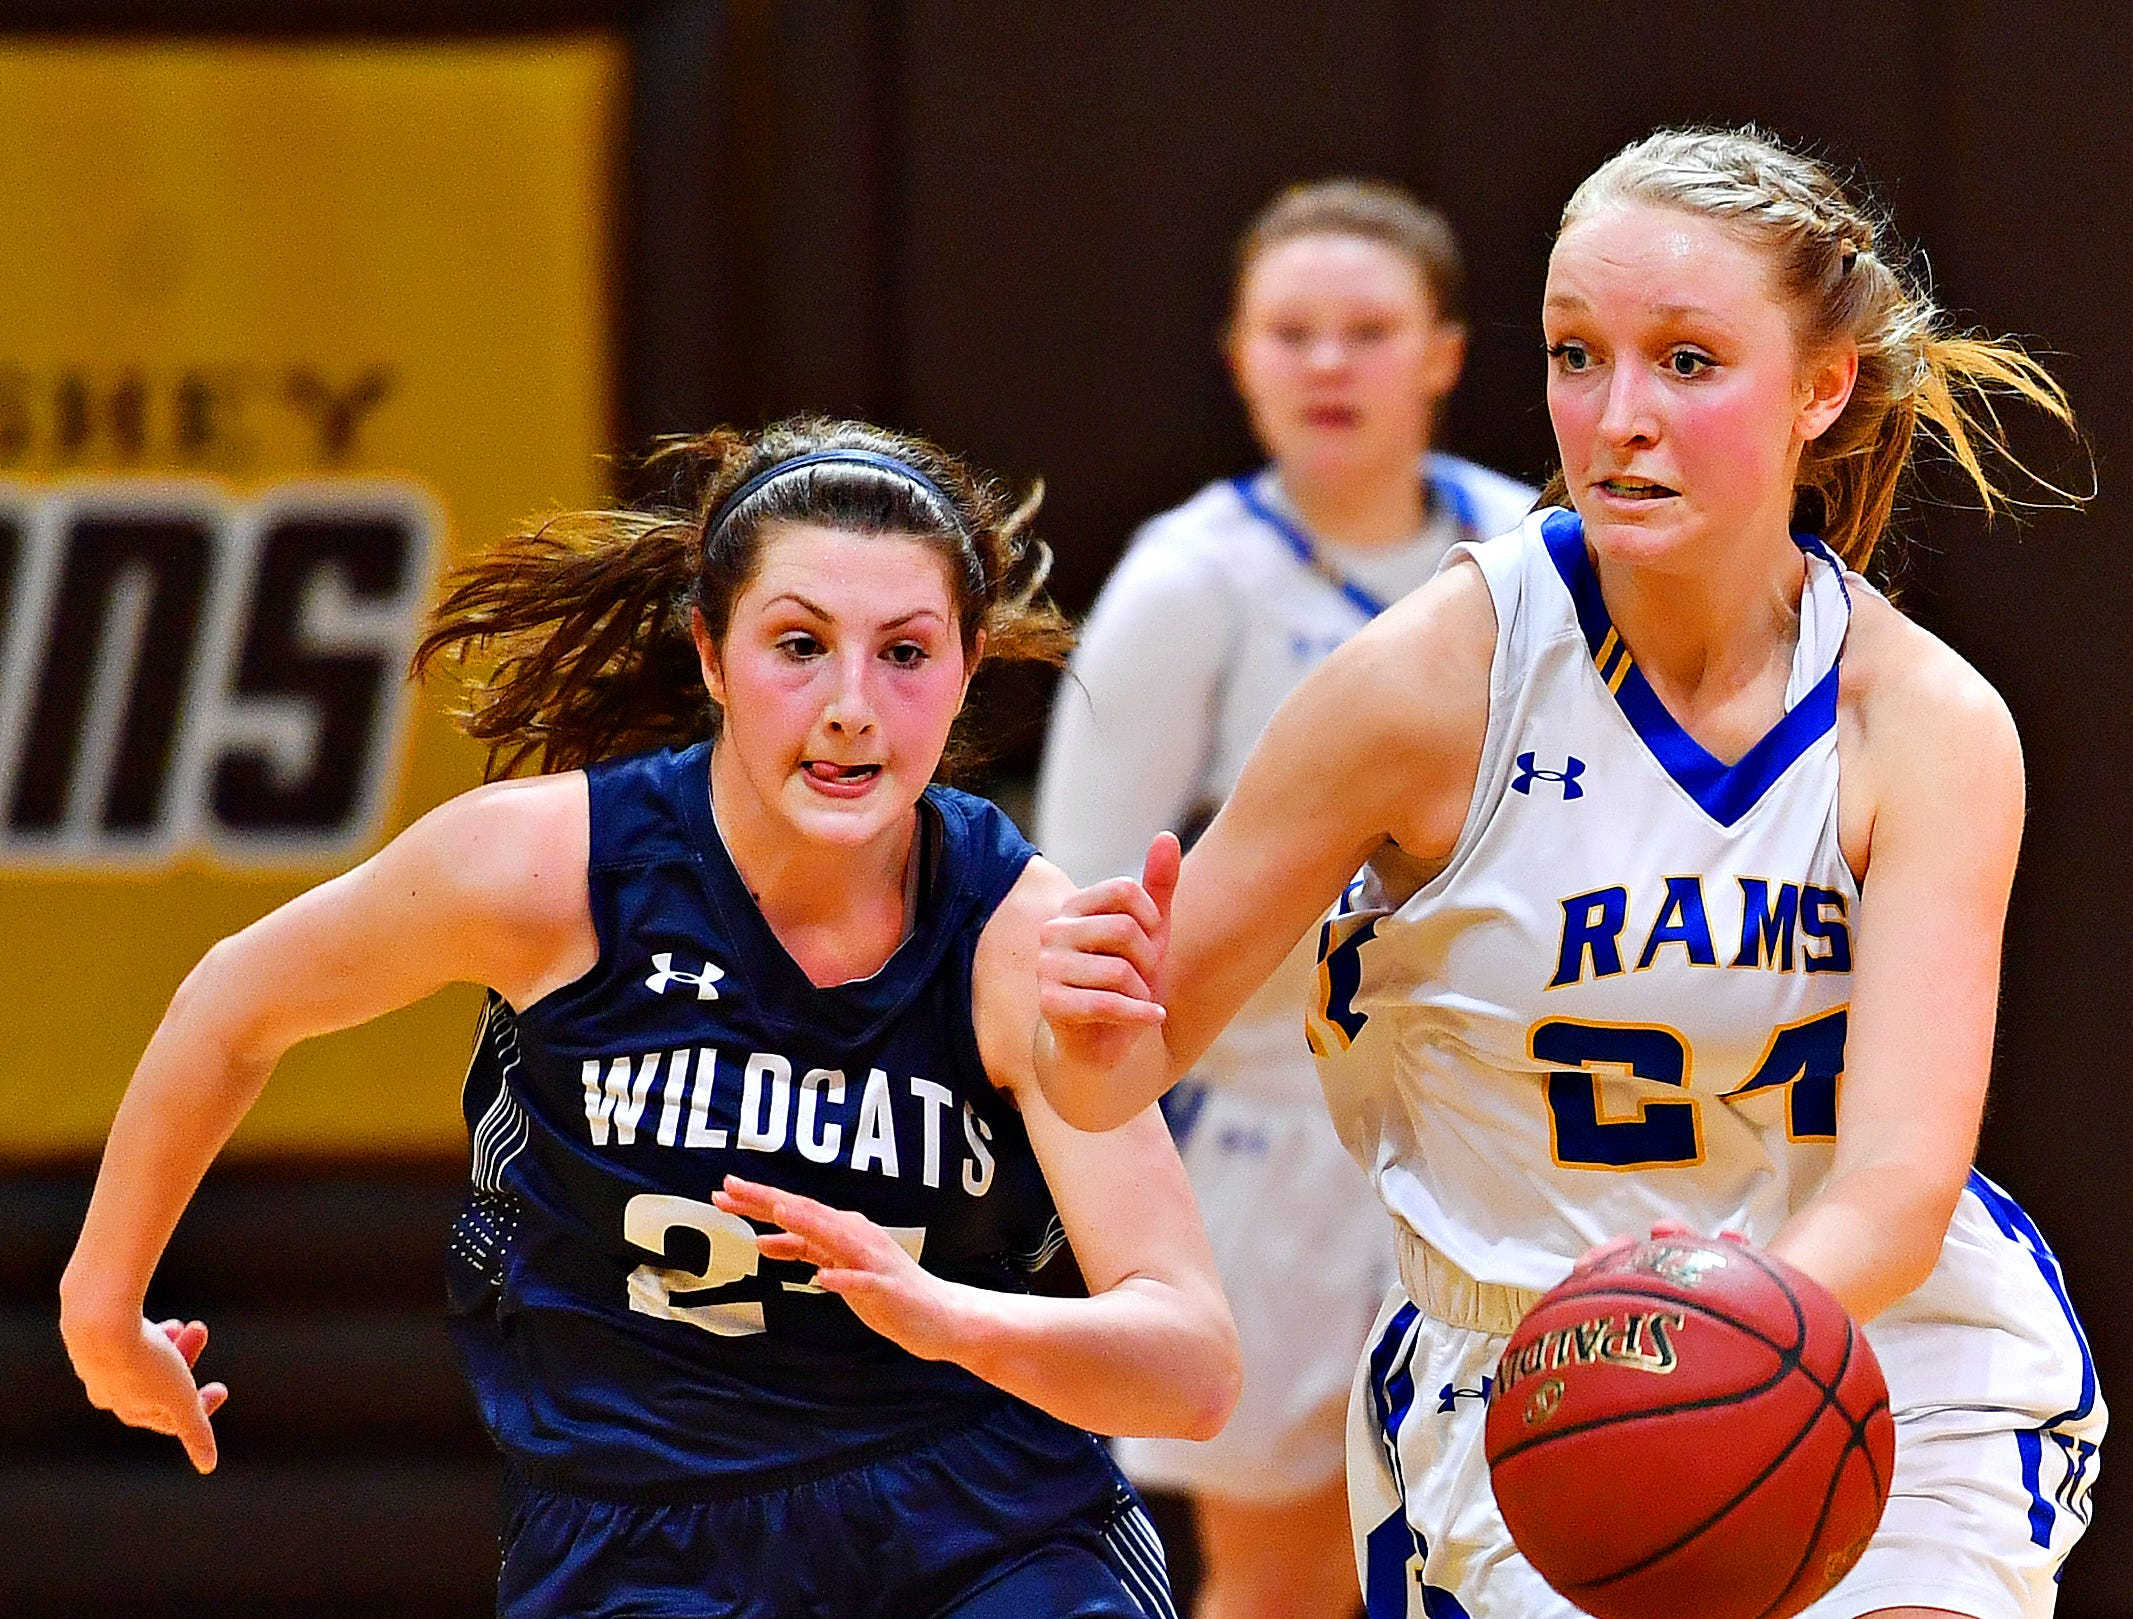 Kennard-Dale's Lexie Kopko, right, advances the ball while Mifflinburg's Reagan Griffith defends during PIAA Class 4-A girl's basketball second round at Milton Hershey High School in Hershey, Wednesday, March 13, 2019. Mifflinburg would win the game 51-45. Dawn J. Sagert photo